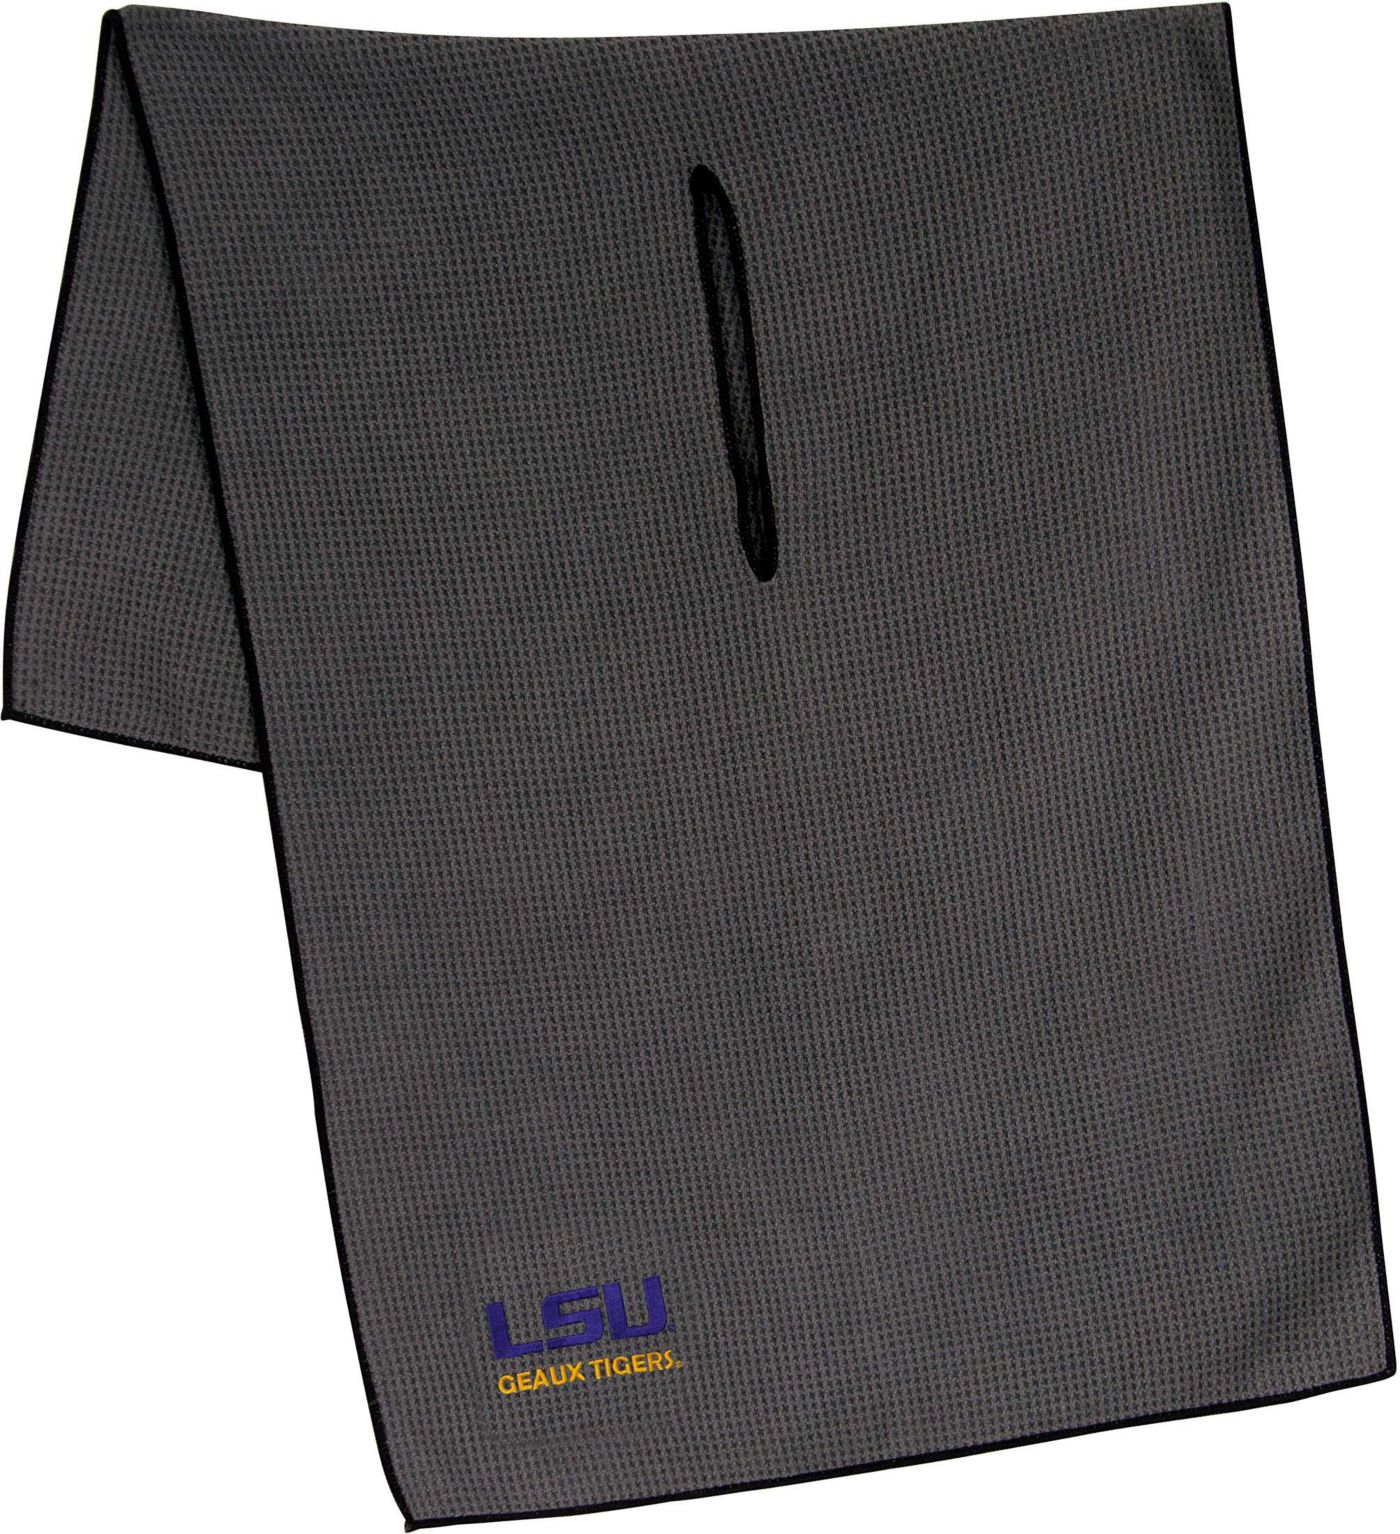 "Team Effort LSU Tigers 19"" x 41"" Microfiber Golf Towel"